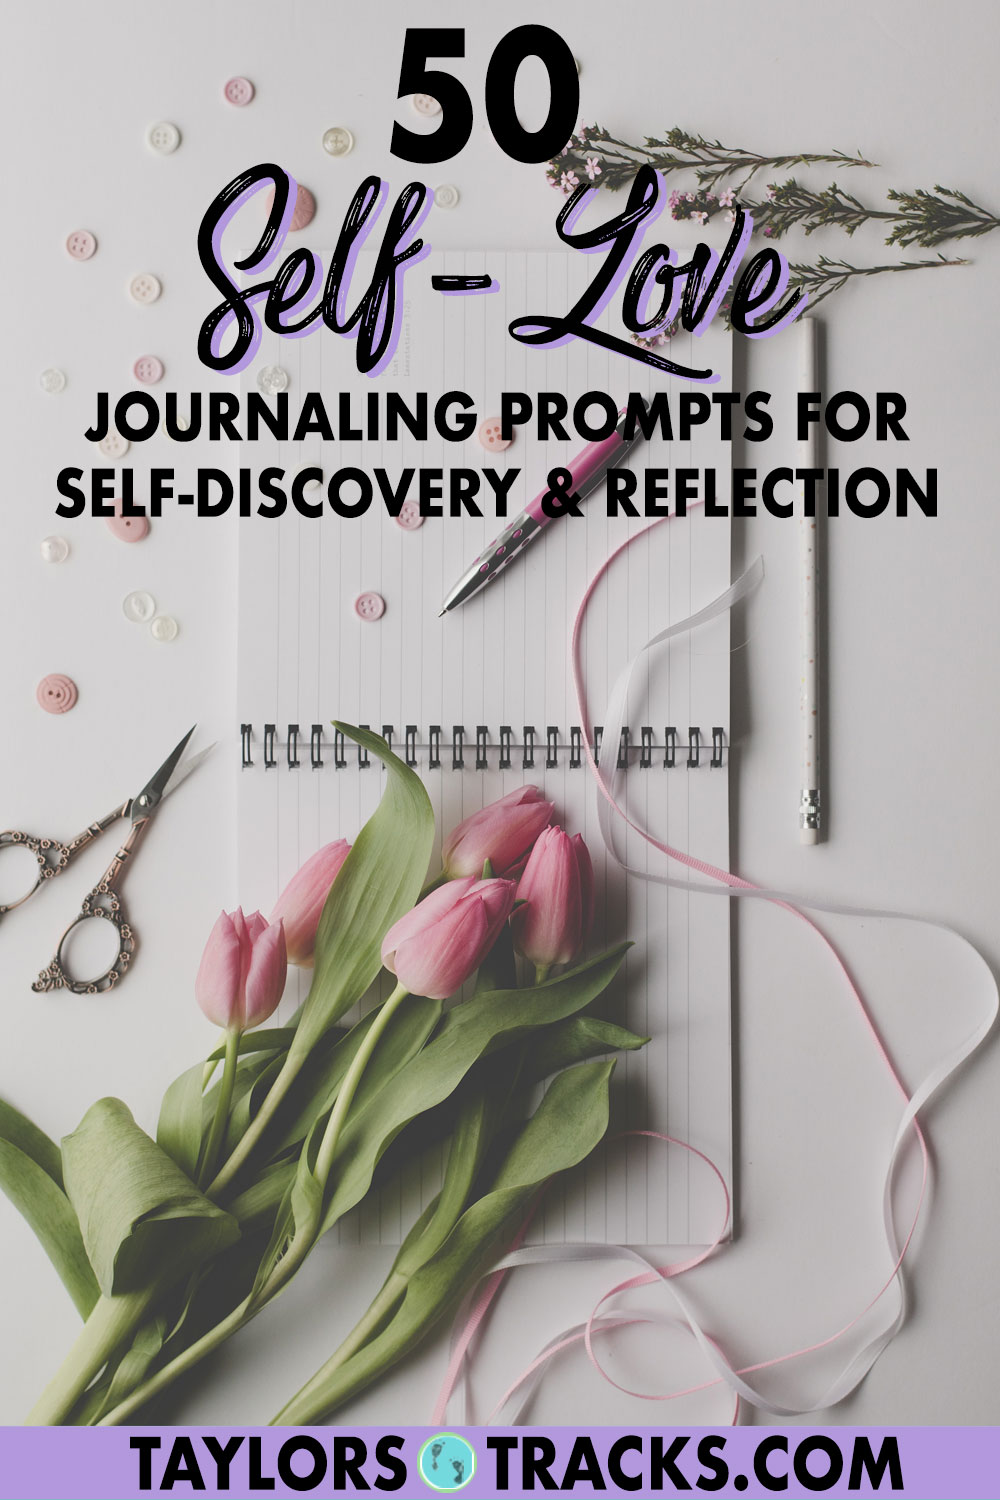 Begin your self-love journey today by learning how to love yourself through journaling about self-love. With these journaling prompts you'll be guided through acceptance, forgiveness, confidence, self-worth and ultimately gain so much self-love. Click to read the powerful self-love journaling prompts!